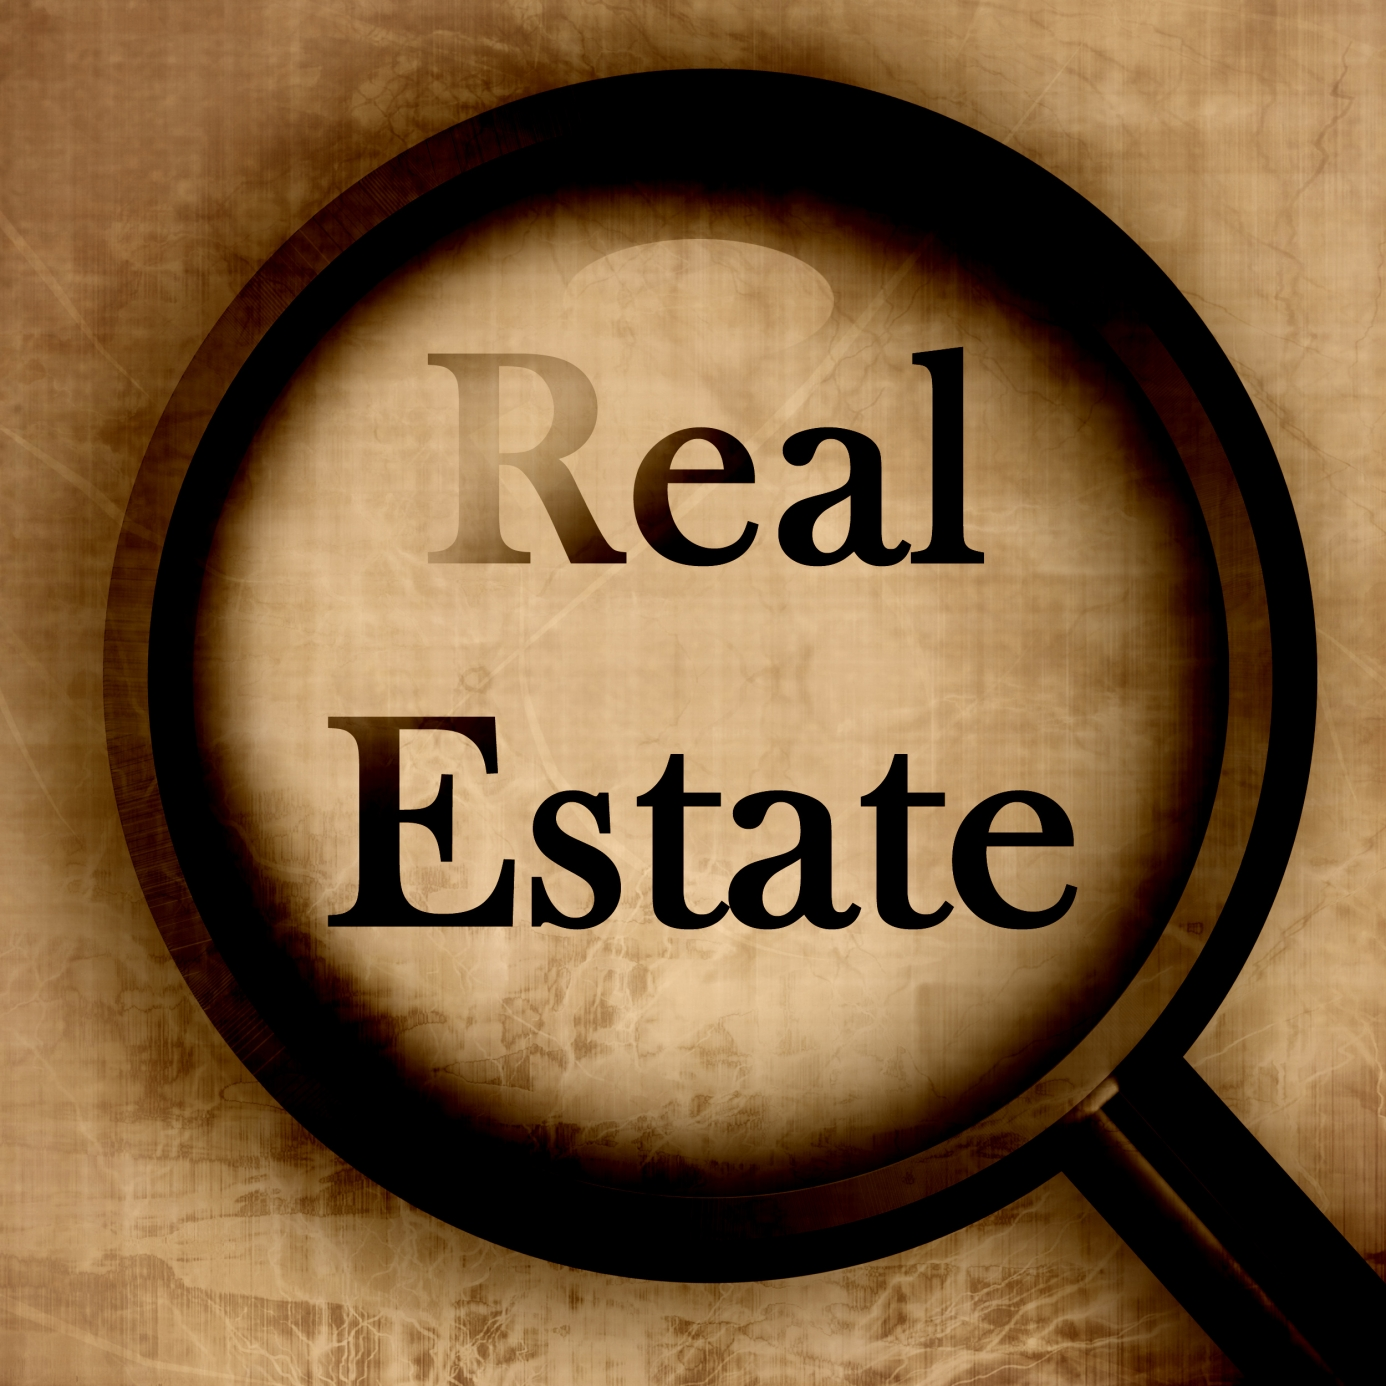 Real Estate Listings in Canada houses condos land